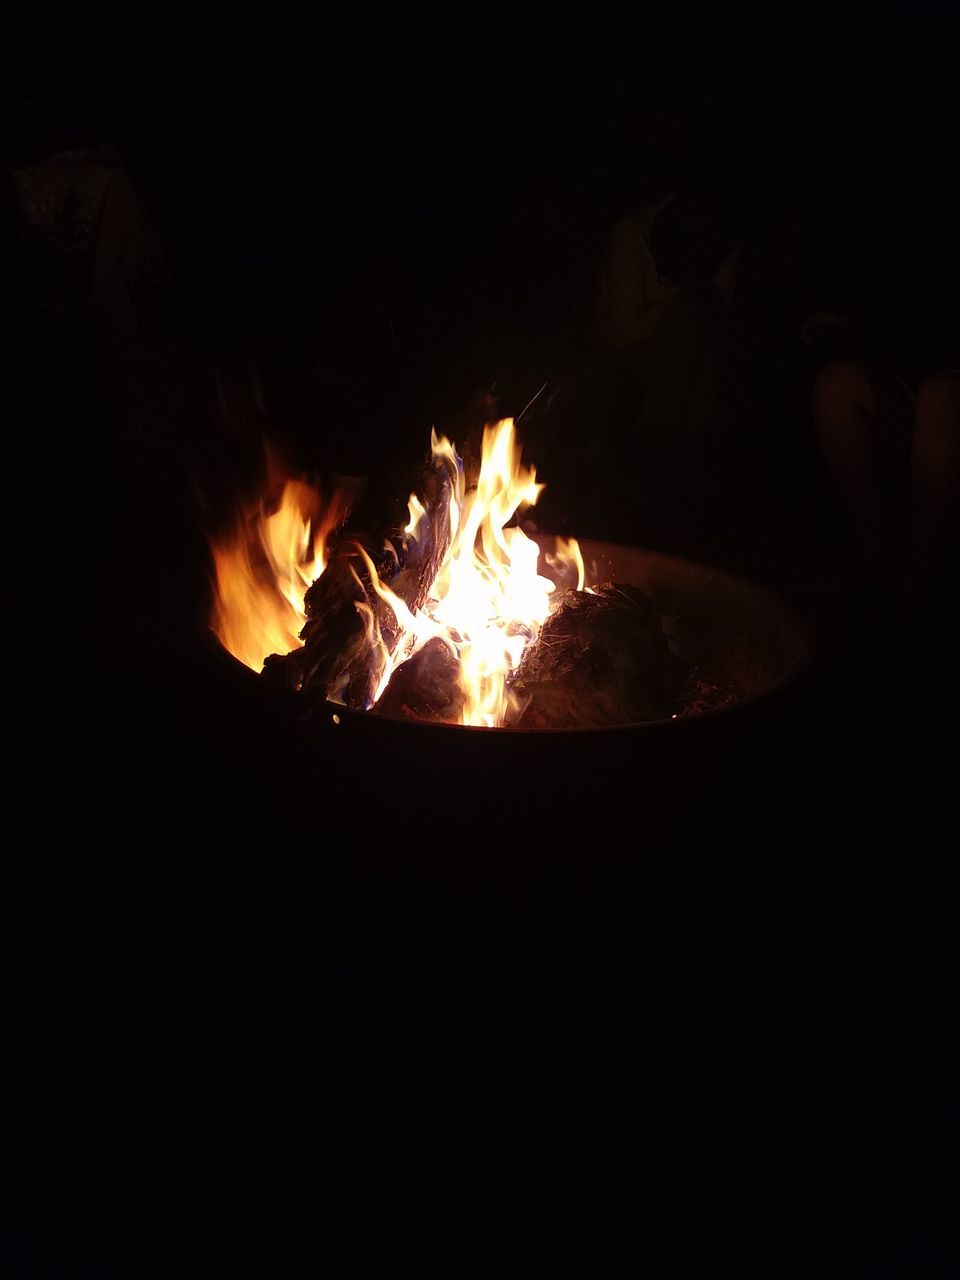 burning, night, flame, heat - temperature, no people, close-up, outdoors, bonfire, fire pit, sky